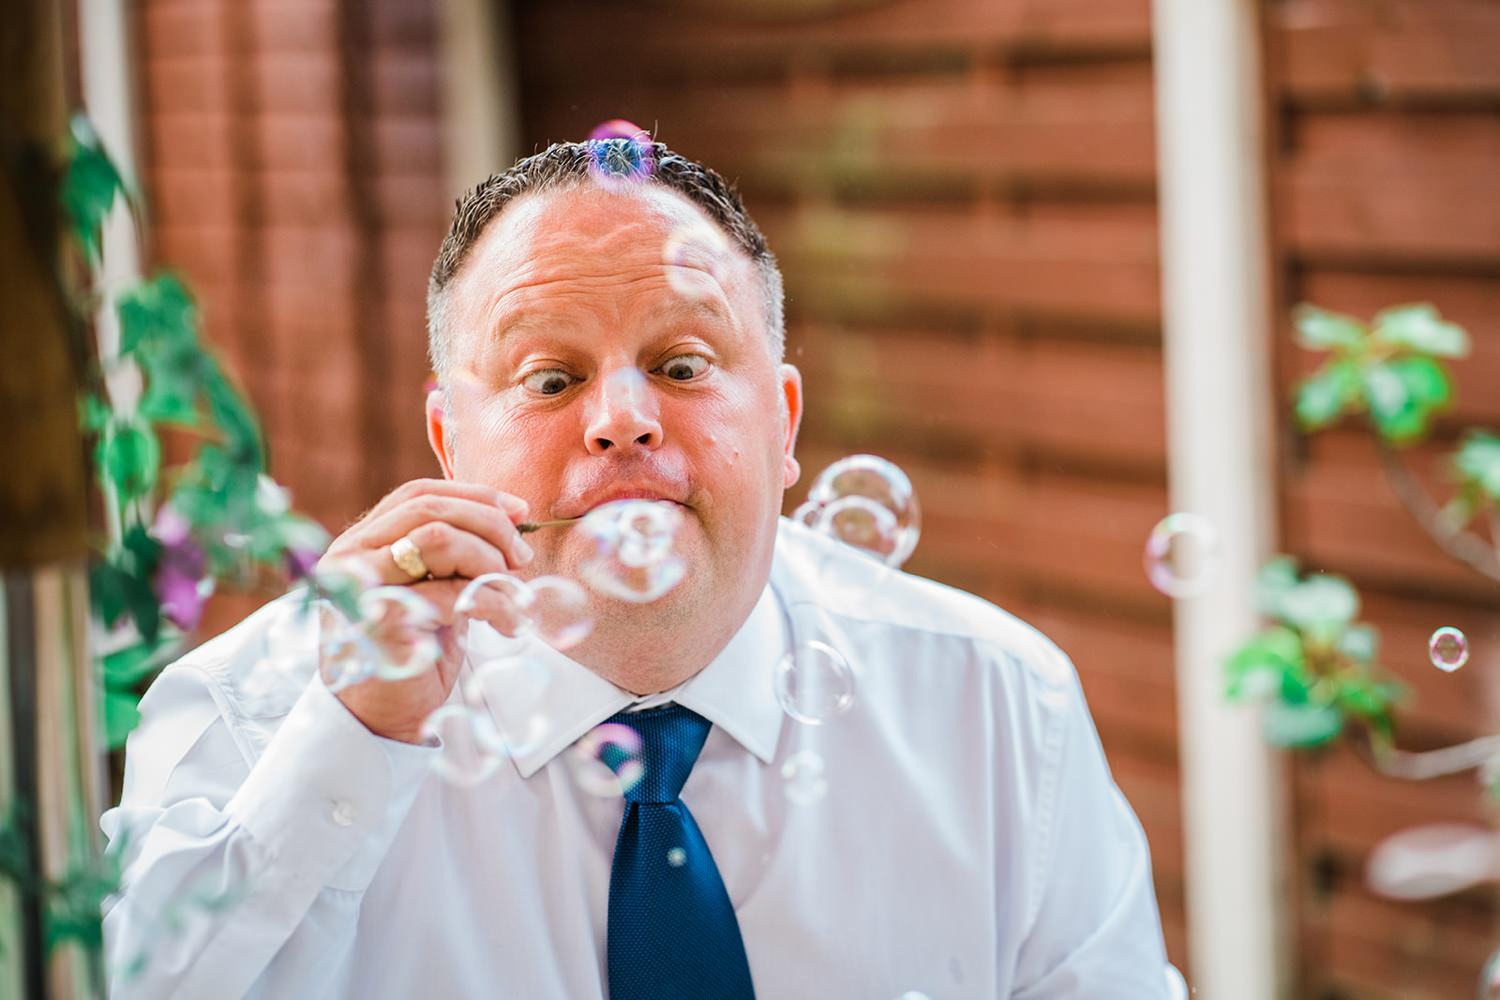 Wedding guest blowing bubbles small wedding